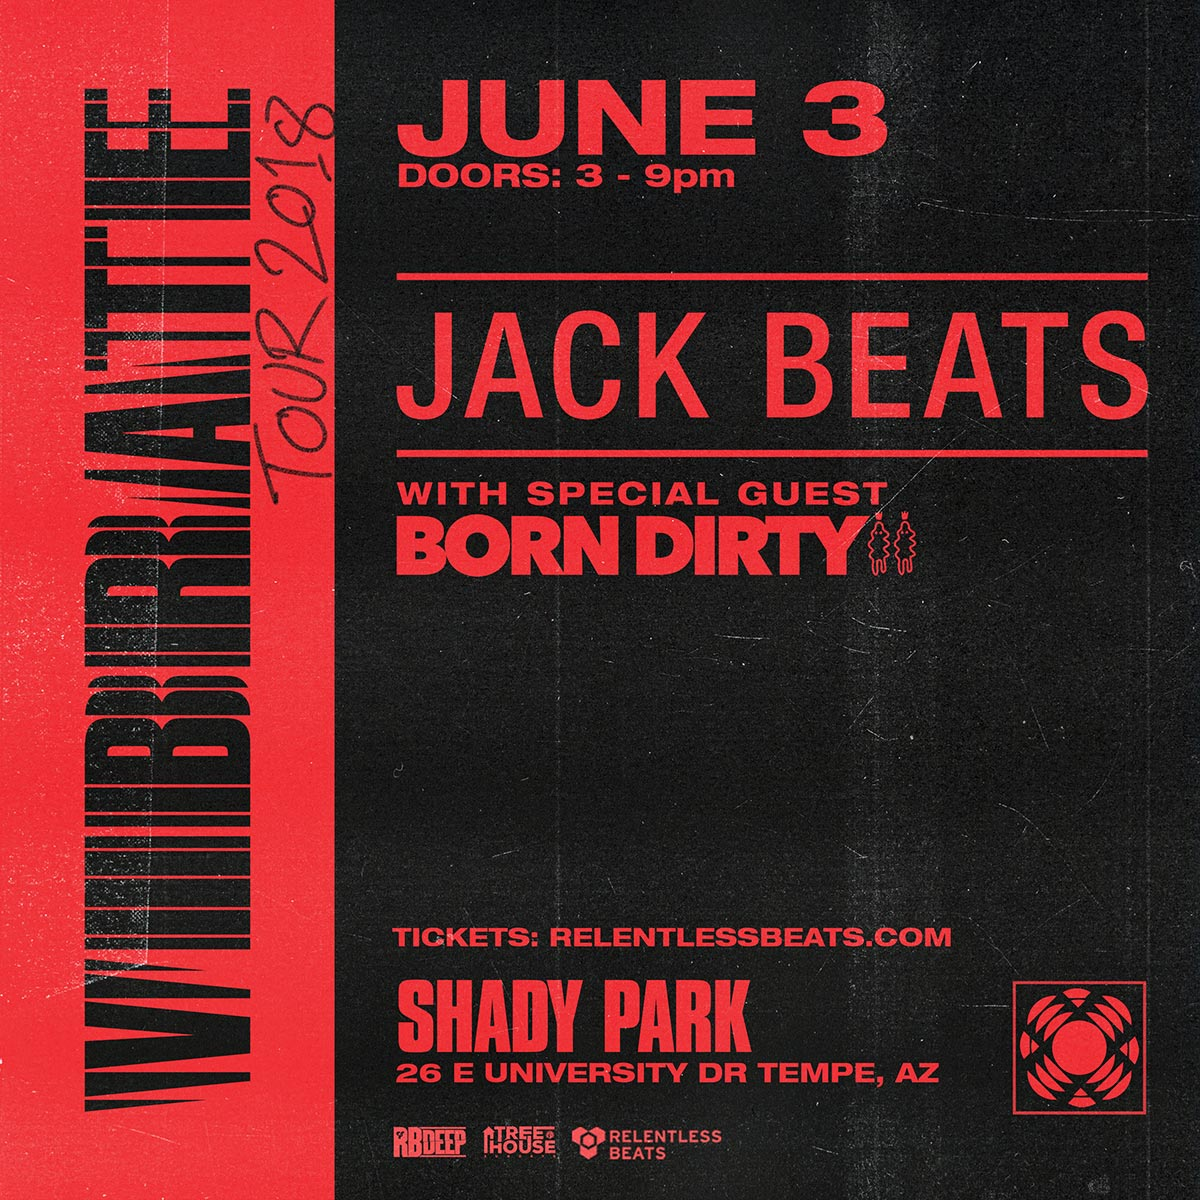 Flyer for Jack Beats & Born Dirty